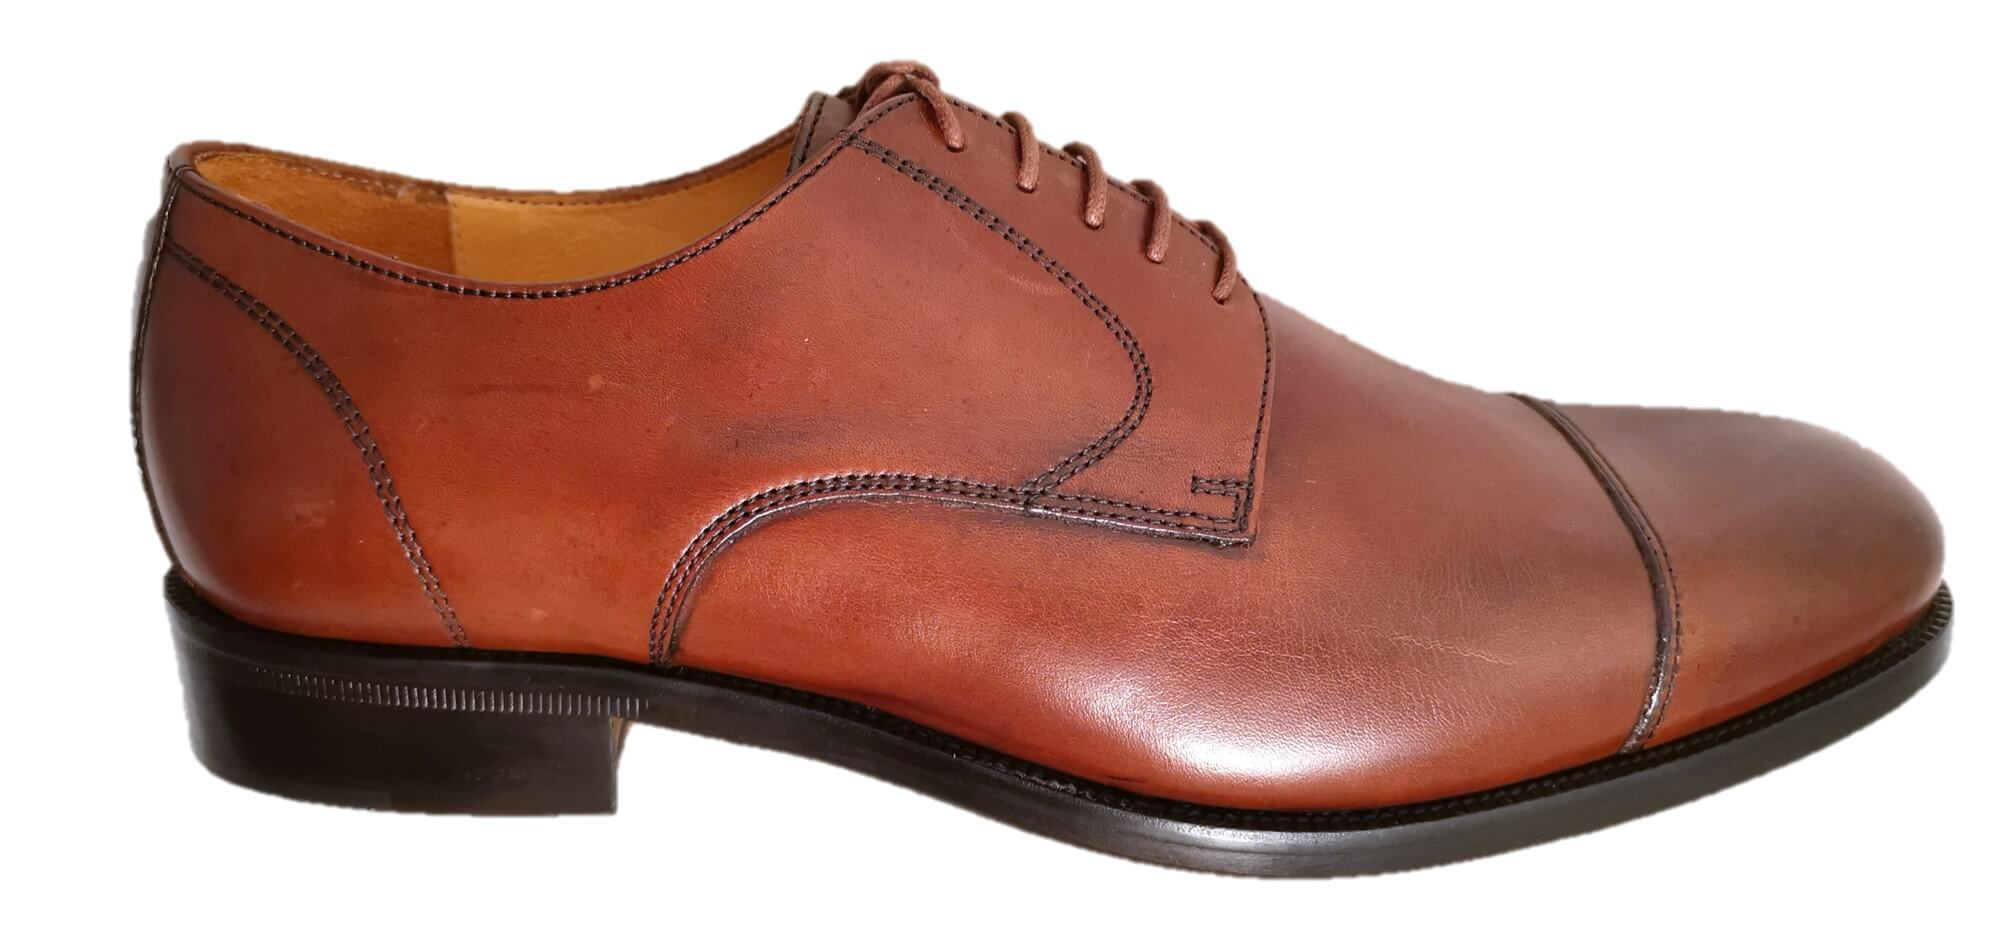 brown cap toe